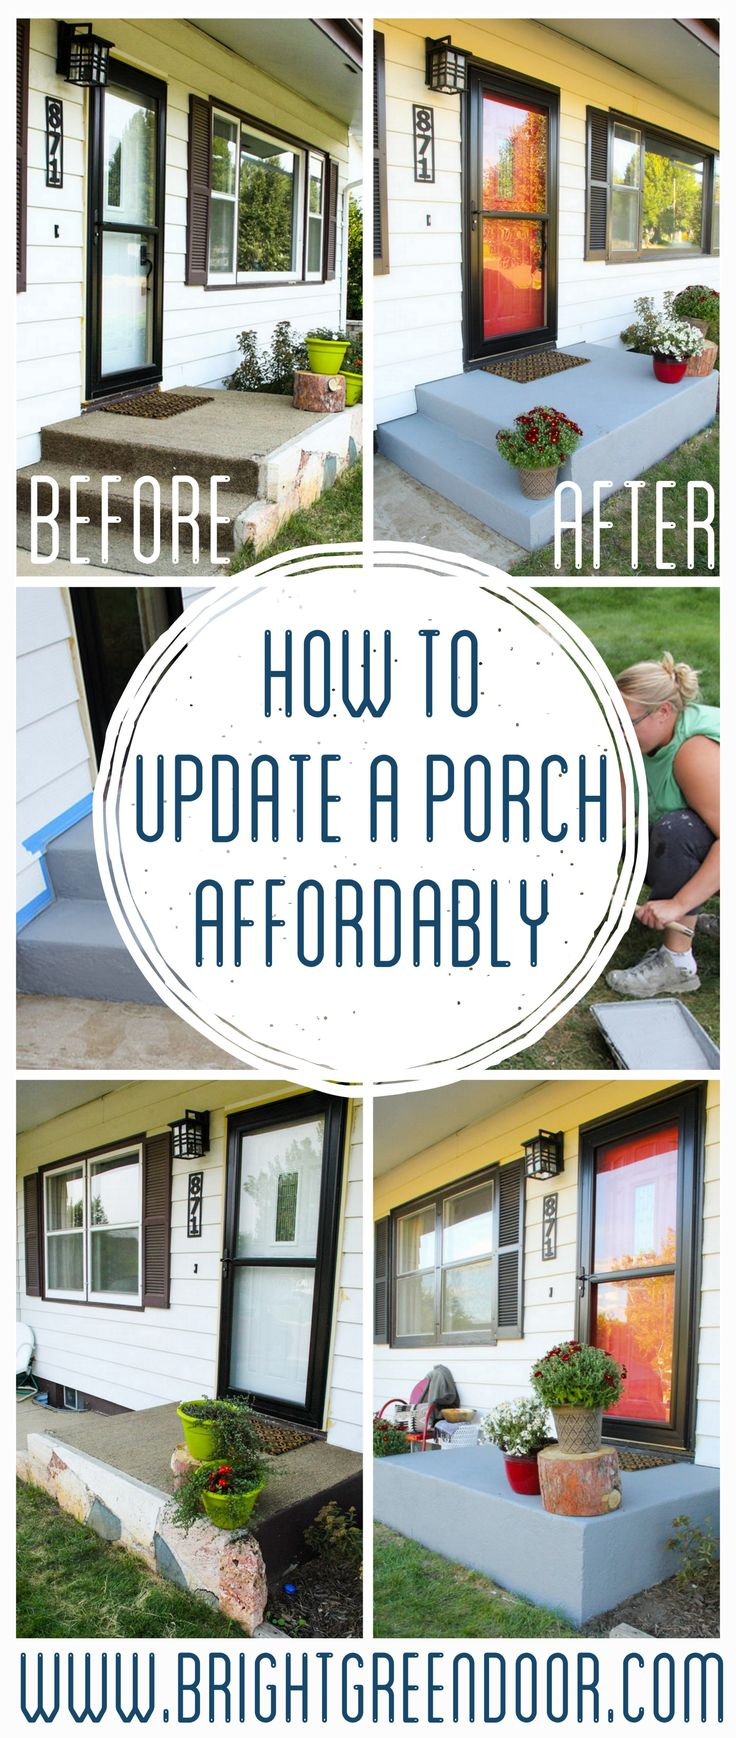 How to Update a Porch Affordably